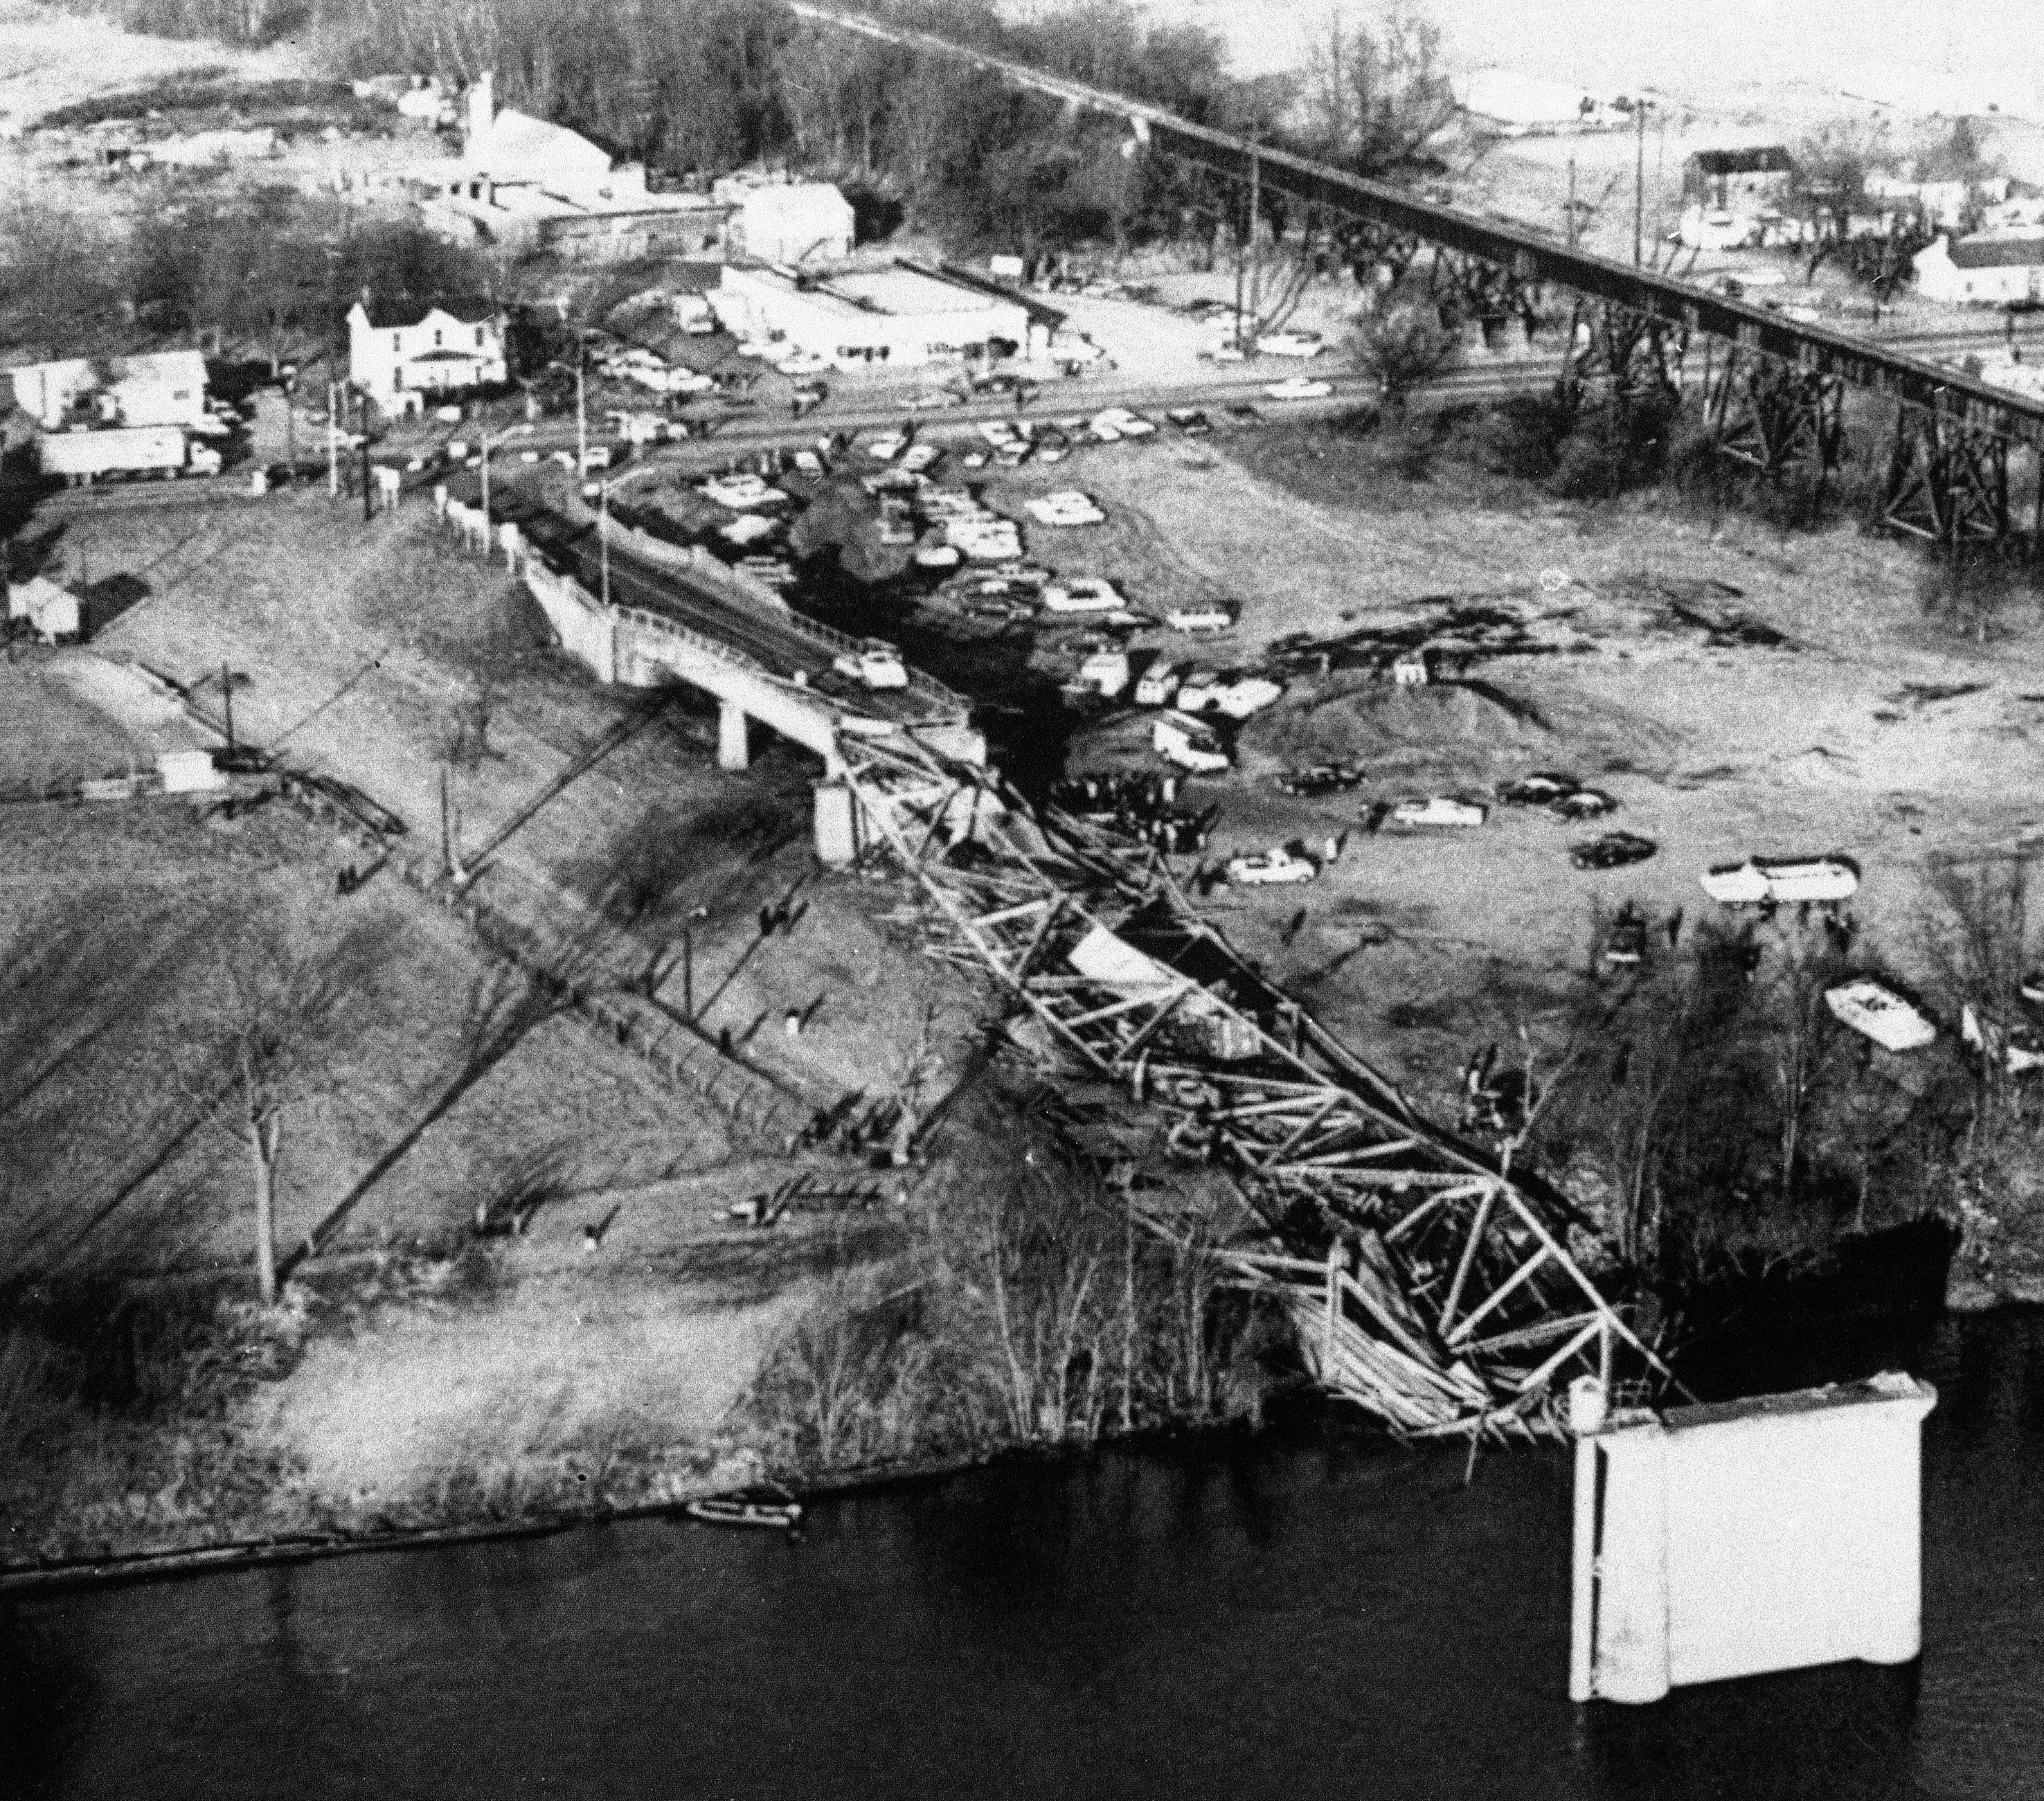 The deadliest bridge disaster in US history was caused by a tiny